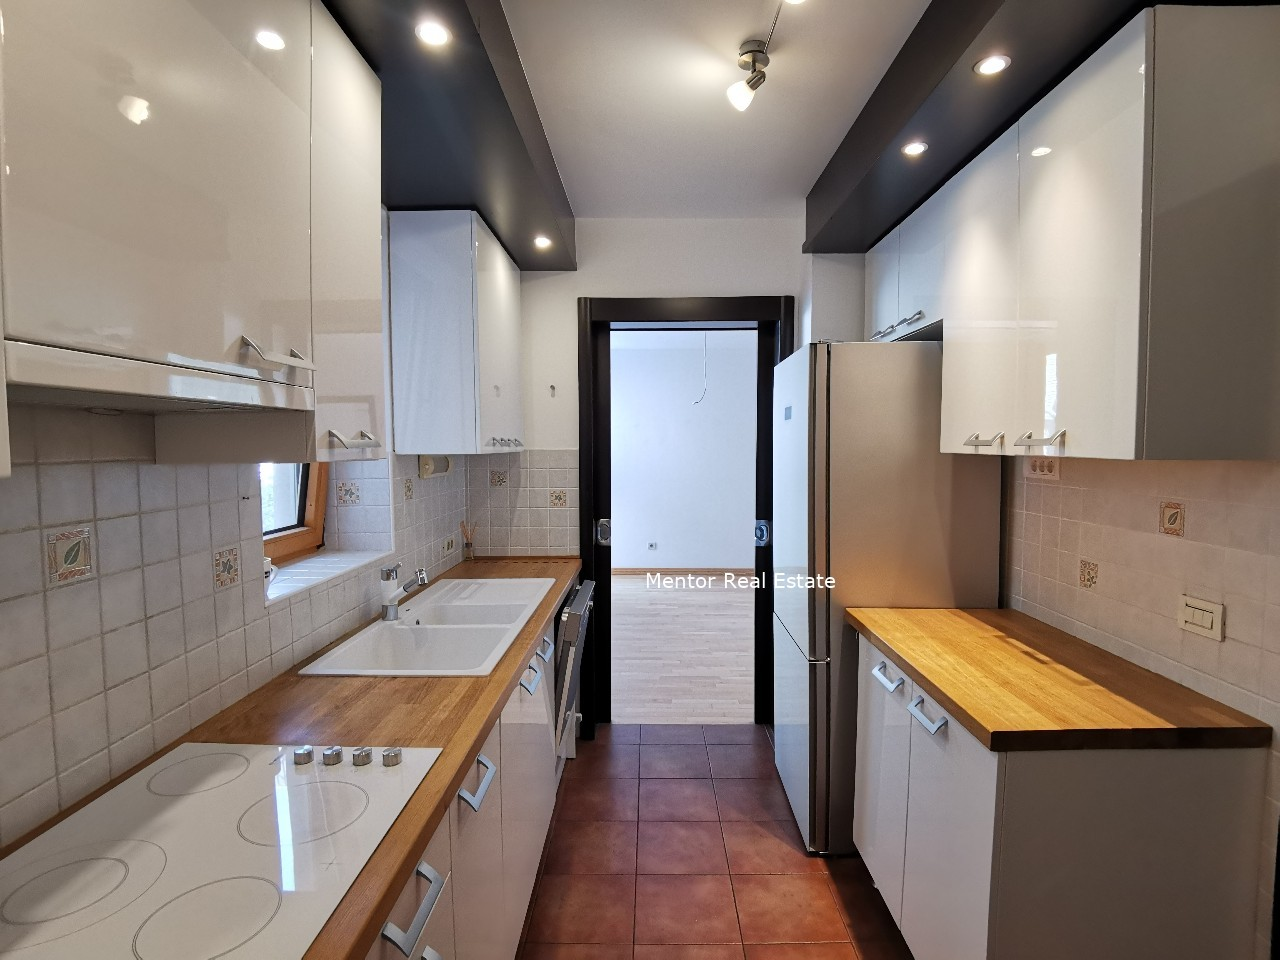 Senjak 280 sqm house for rent